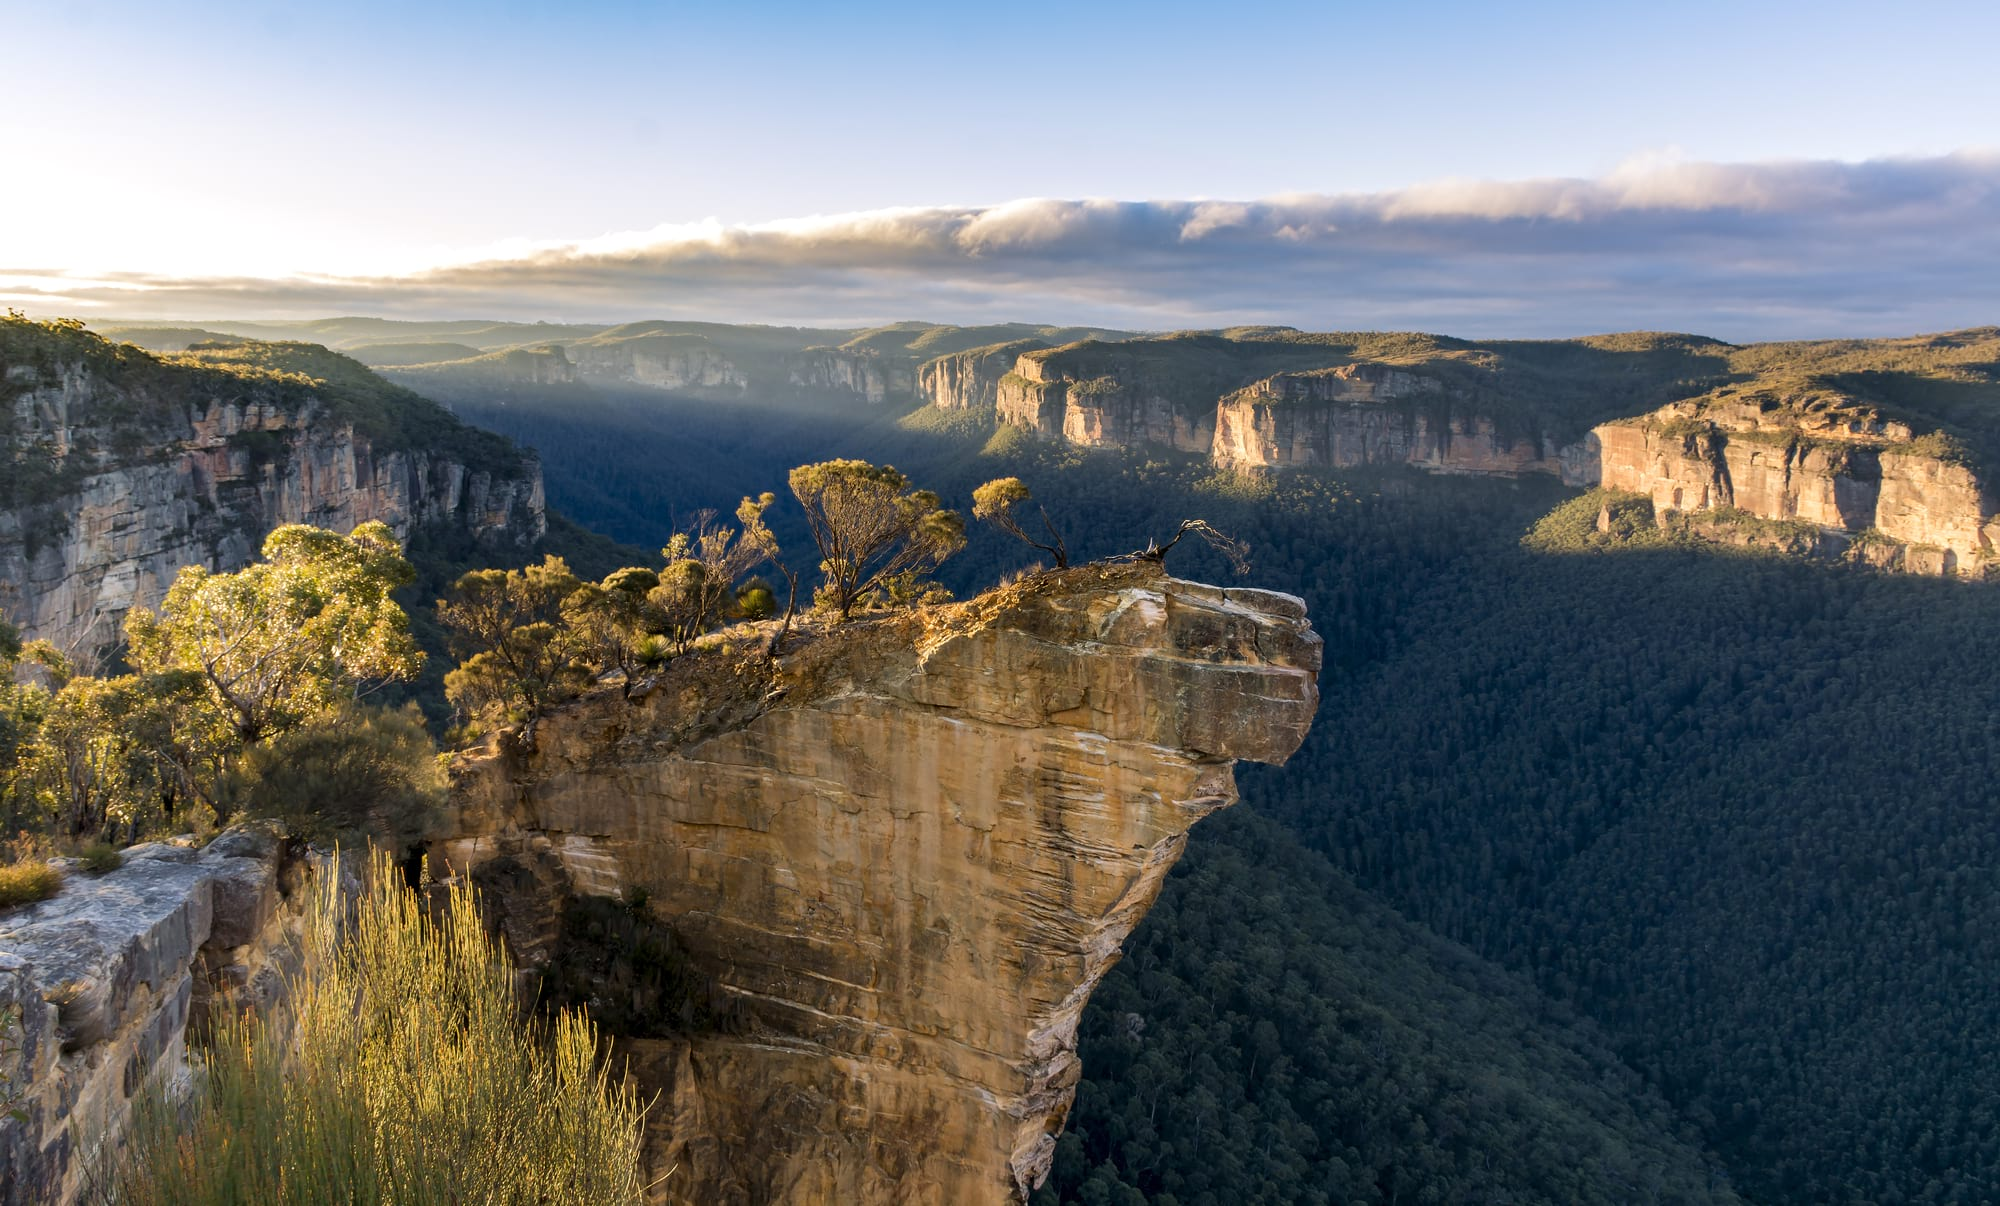 Hanging Rock Lookout's viewpoint over the Blue Mountains National Park